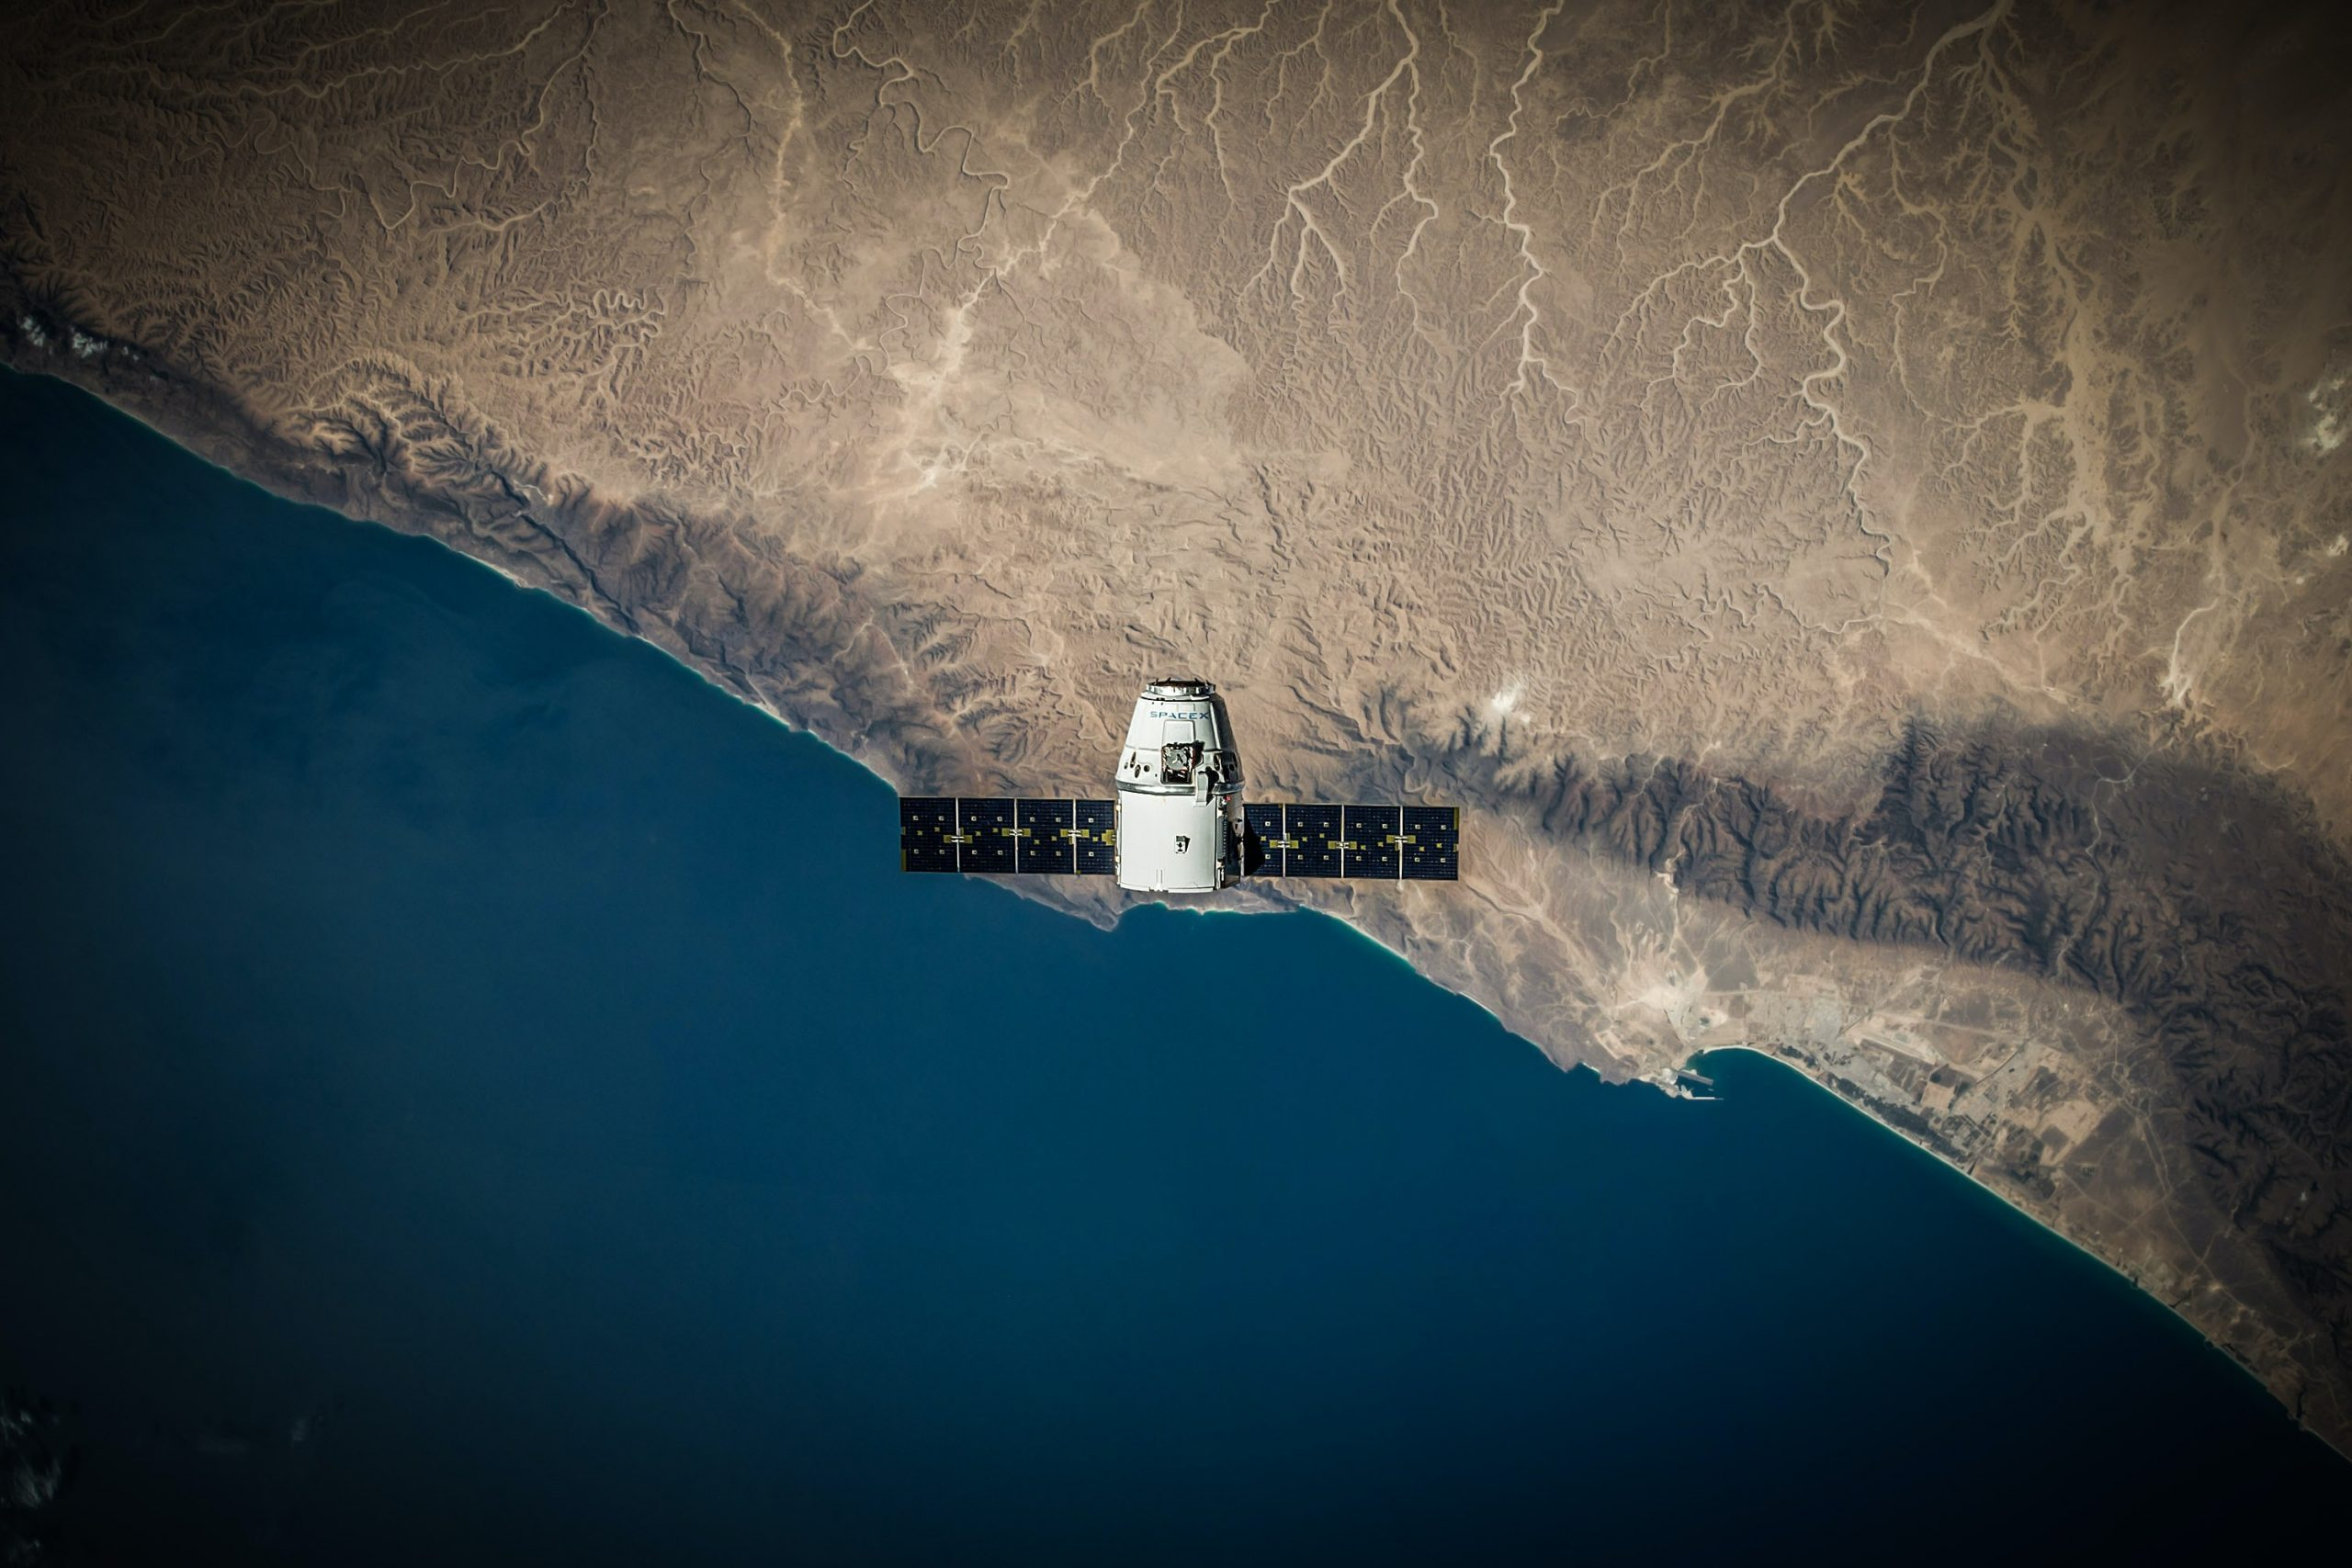 The applications of satellite technology